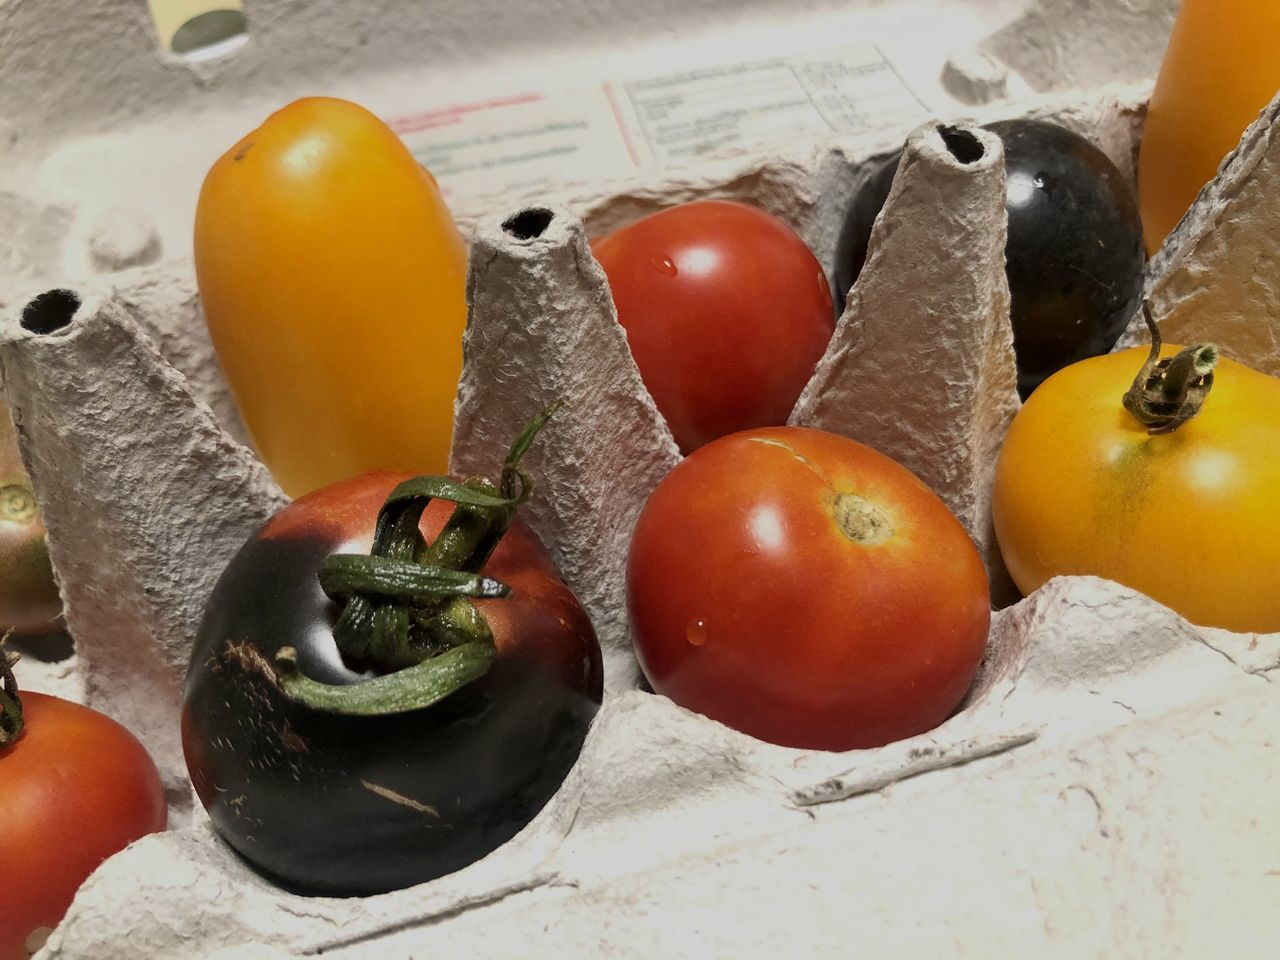 HIGH ANGLE VIEW OF TOMATOES AND FRUITS ON CHERRY